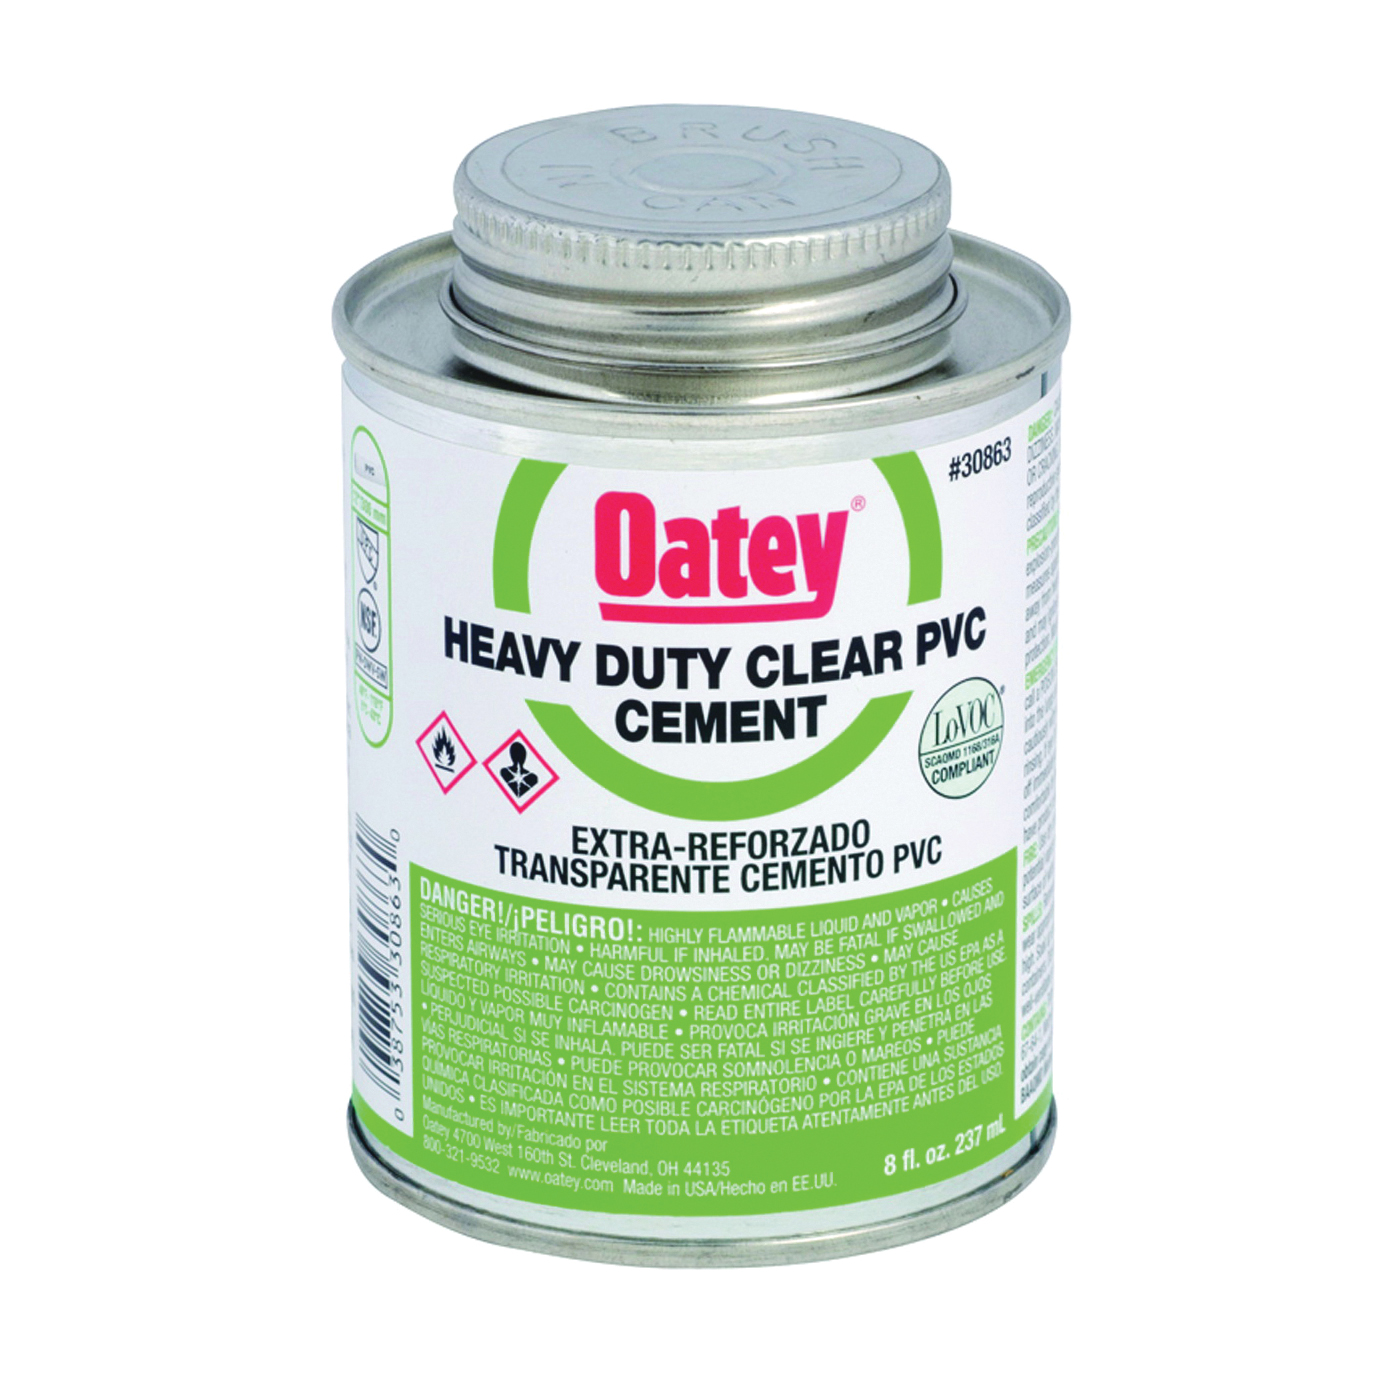 Picture of Oatey 30850 Solvent Cement, 4 oz, Can, Liquid, Clear